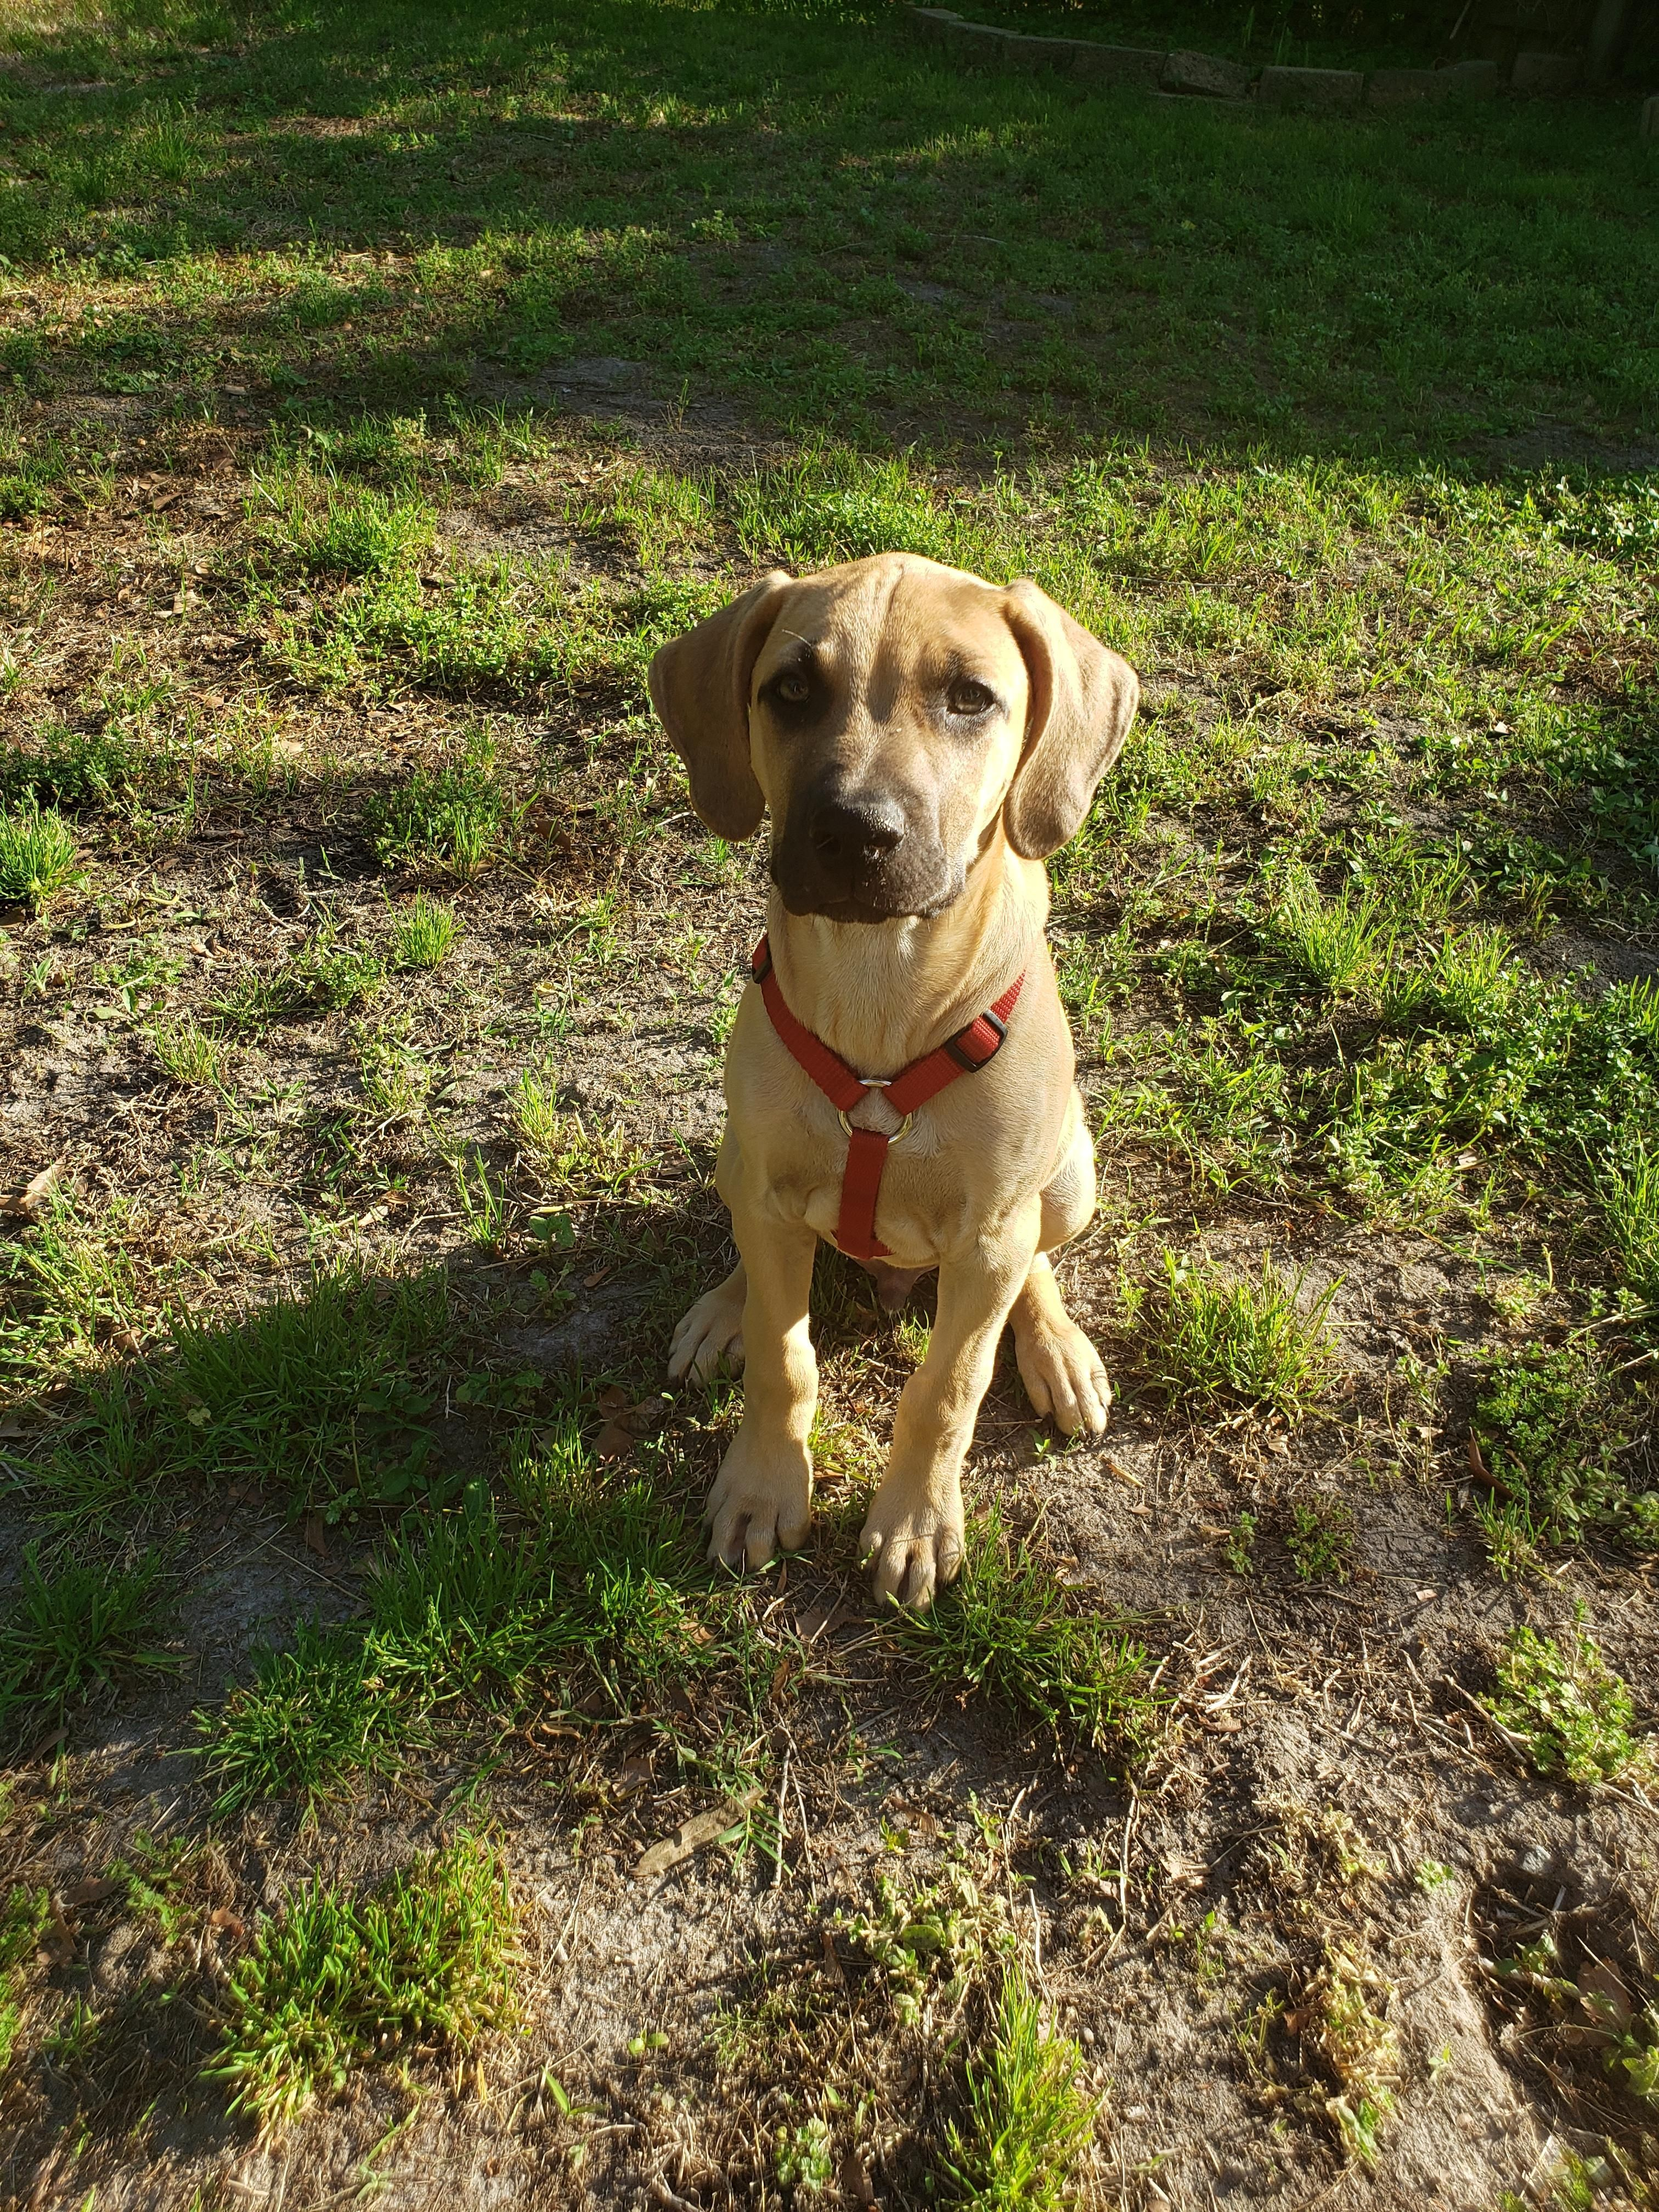 Brewer Black Mouth Cur Turns 3 Months On Saturday And Yes He Is A Very Good Boy Music Indiear Black Mouth Cur Black Mouth Cur Puppies Black Mouth Cur Dog